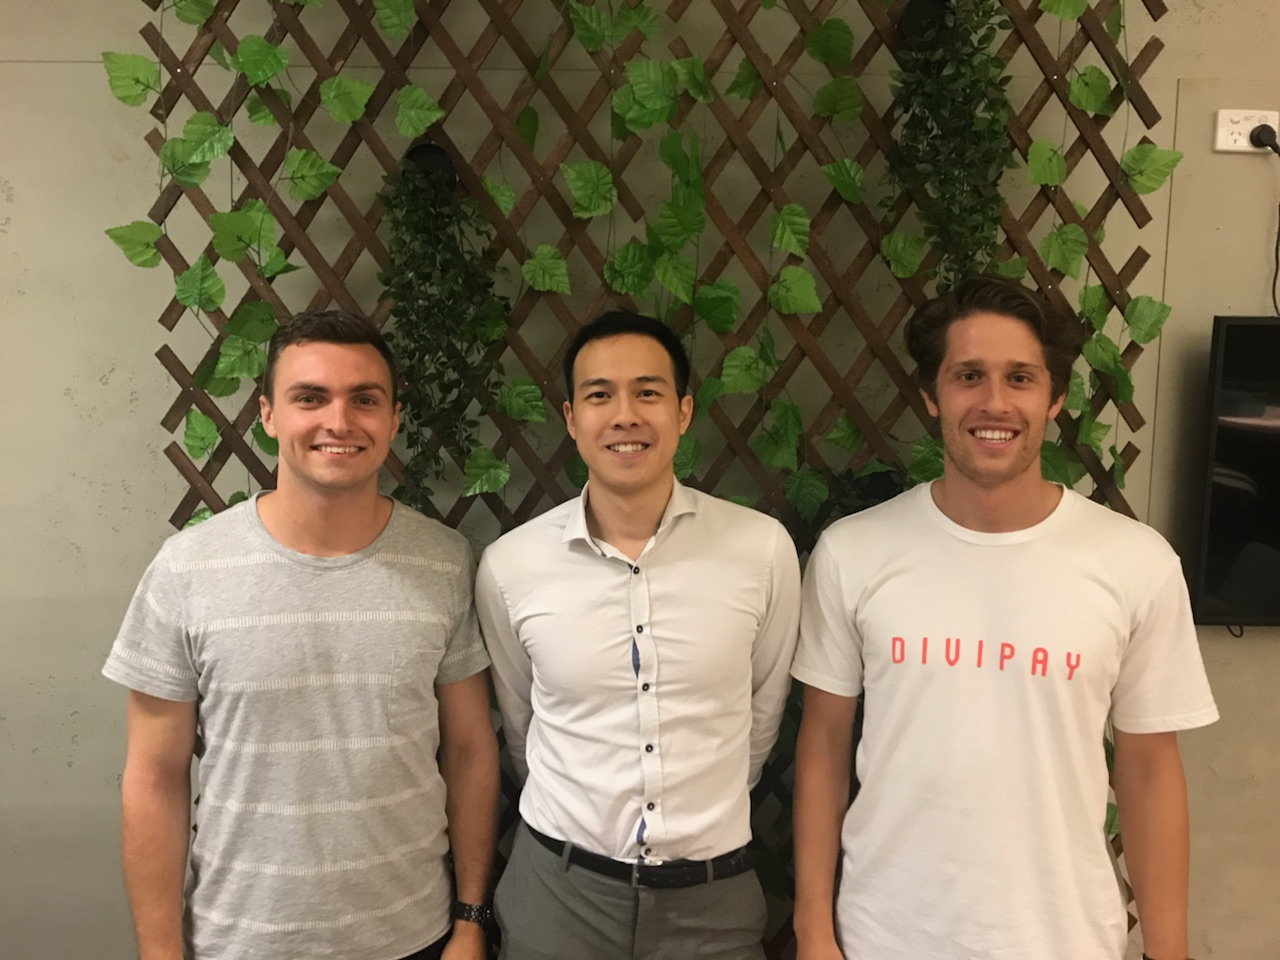 Interview with DiviPay – Russell, Daniel